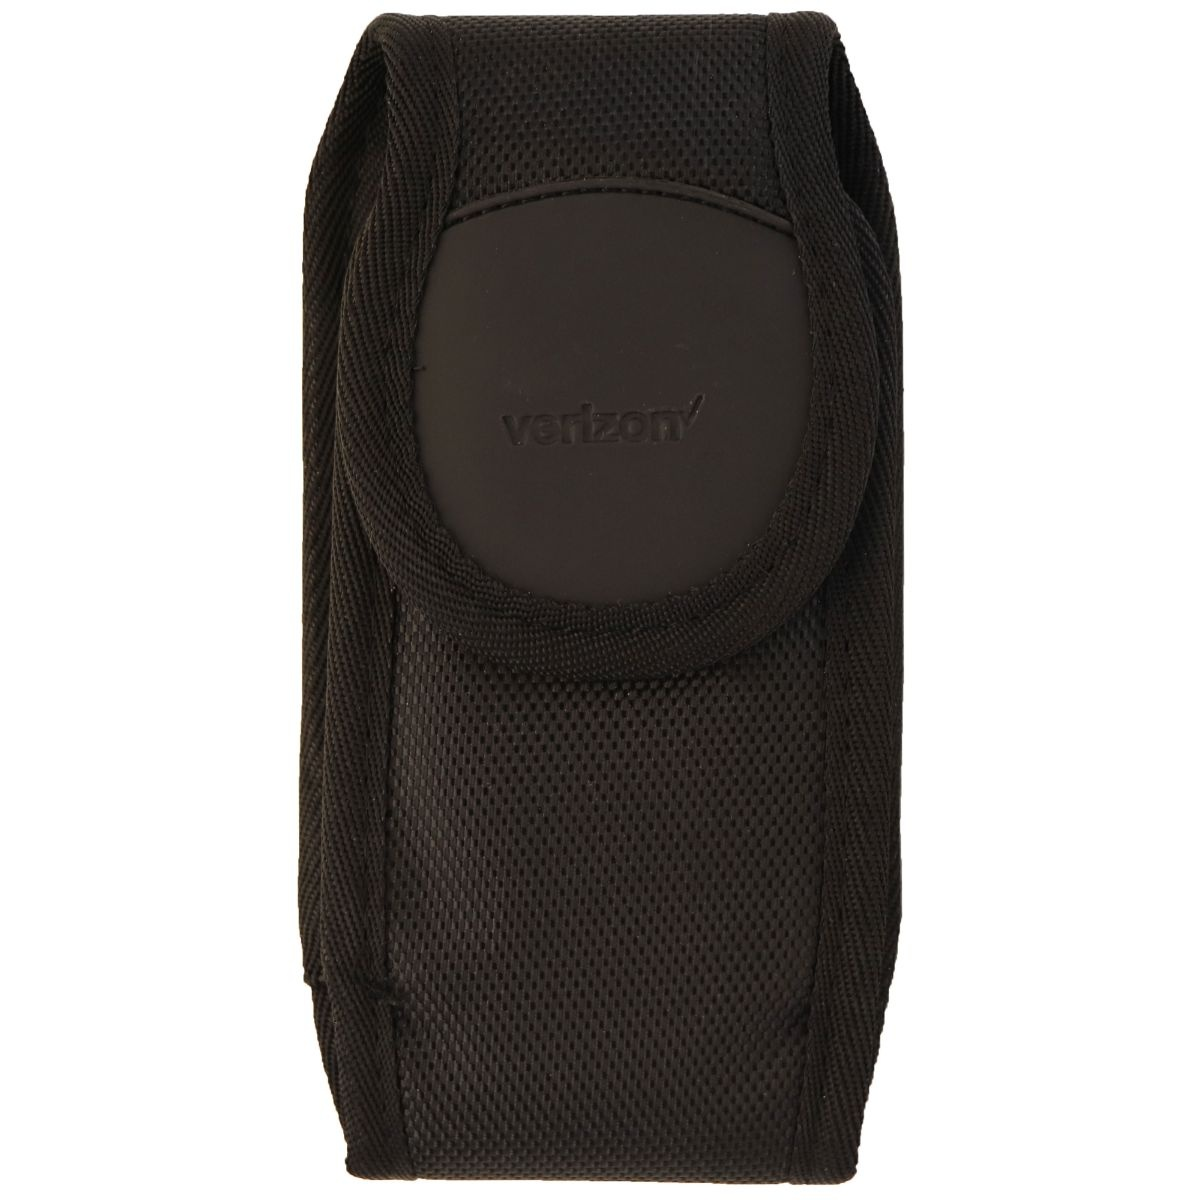 Verizon Rugged Pouch with Rotating Belt Clip for Most Large Smartphones - Black